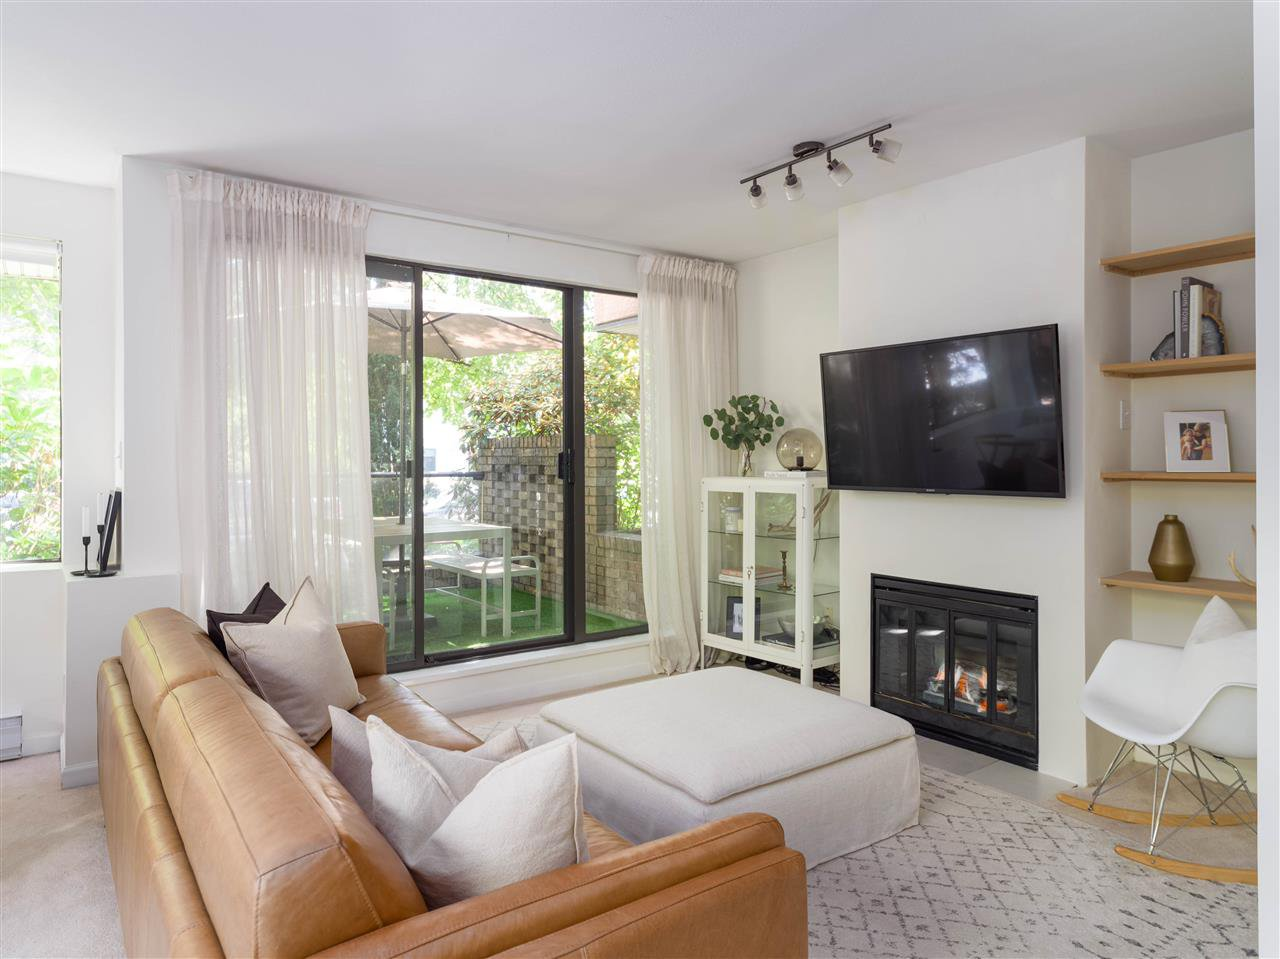 """Main Photo: 104 1702 CHESTERFIELD Avenue in North Vancouver: Central Lonsdale Condo for sale in """"Chesterfield Place"""" : MLS®# R2482500"""